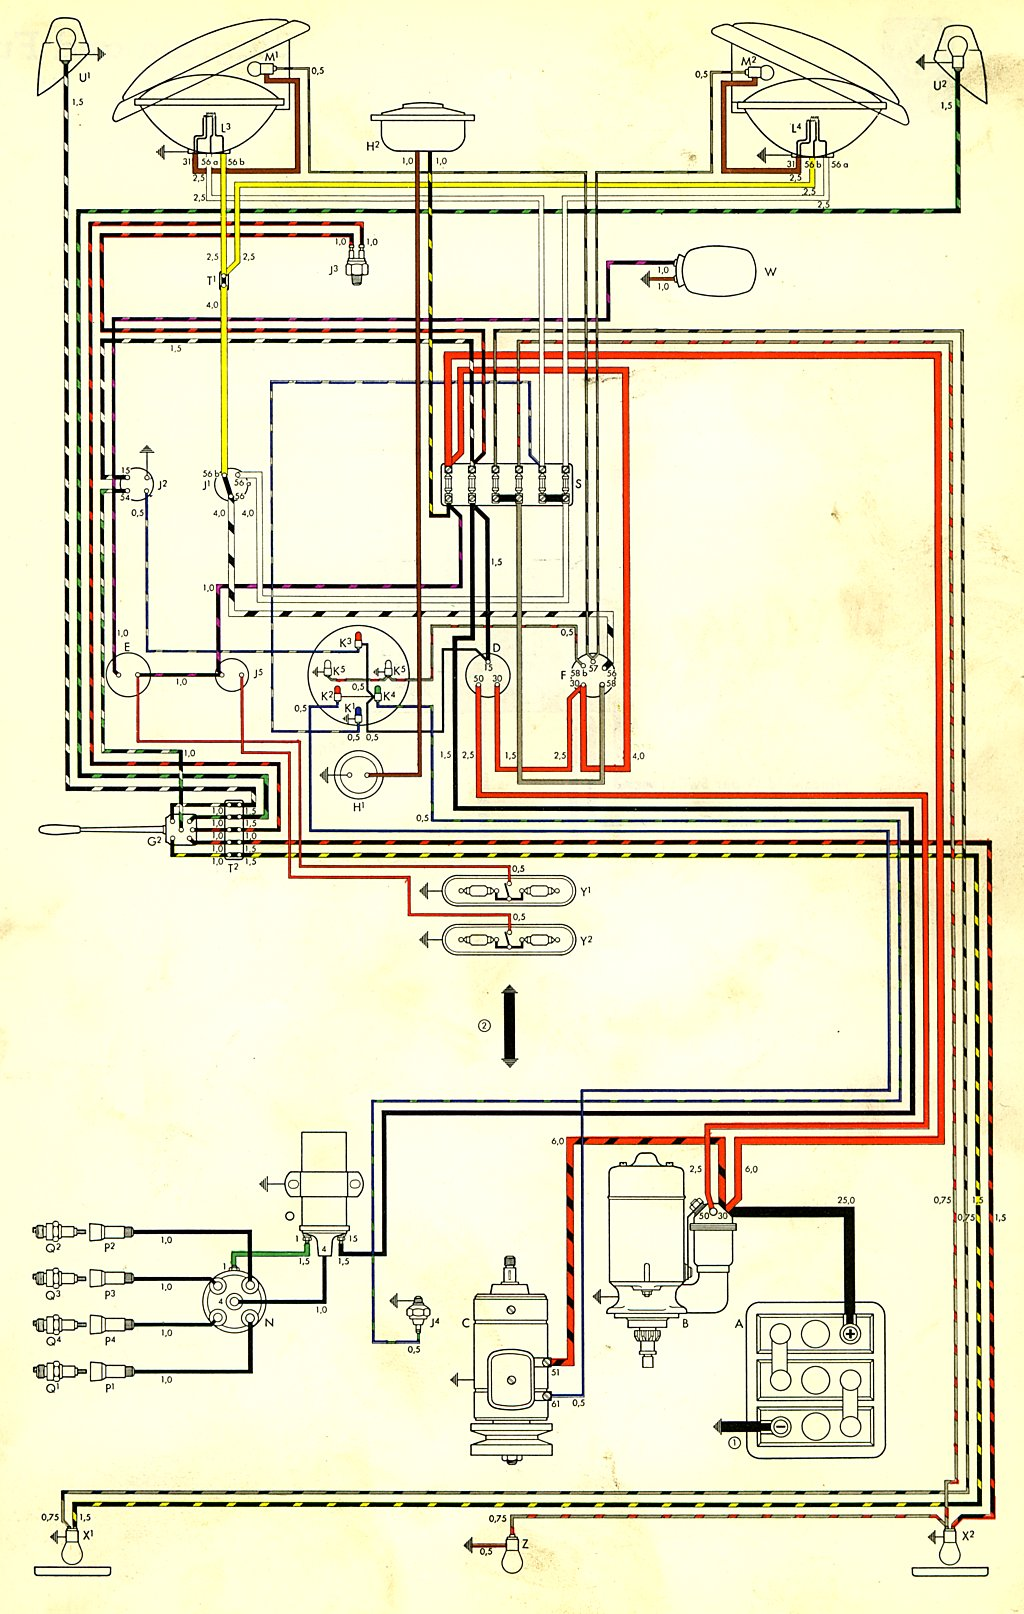 bus_59_USA beetle wiring diagram uk beetle wiring diagrams instruction 1960 vw bus wiring diagram at fashall.co